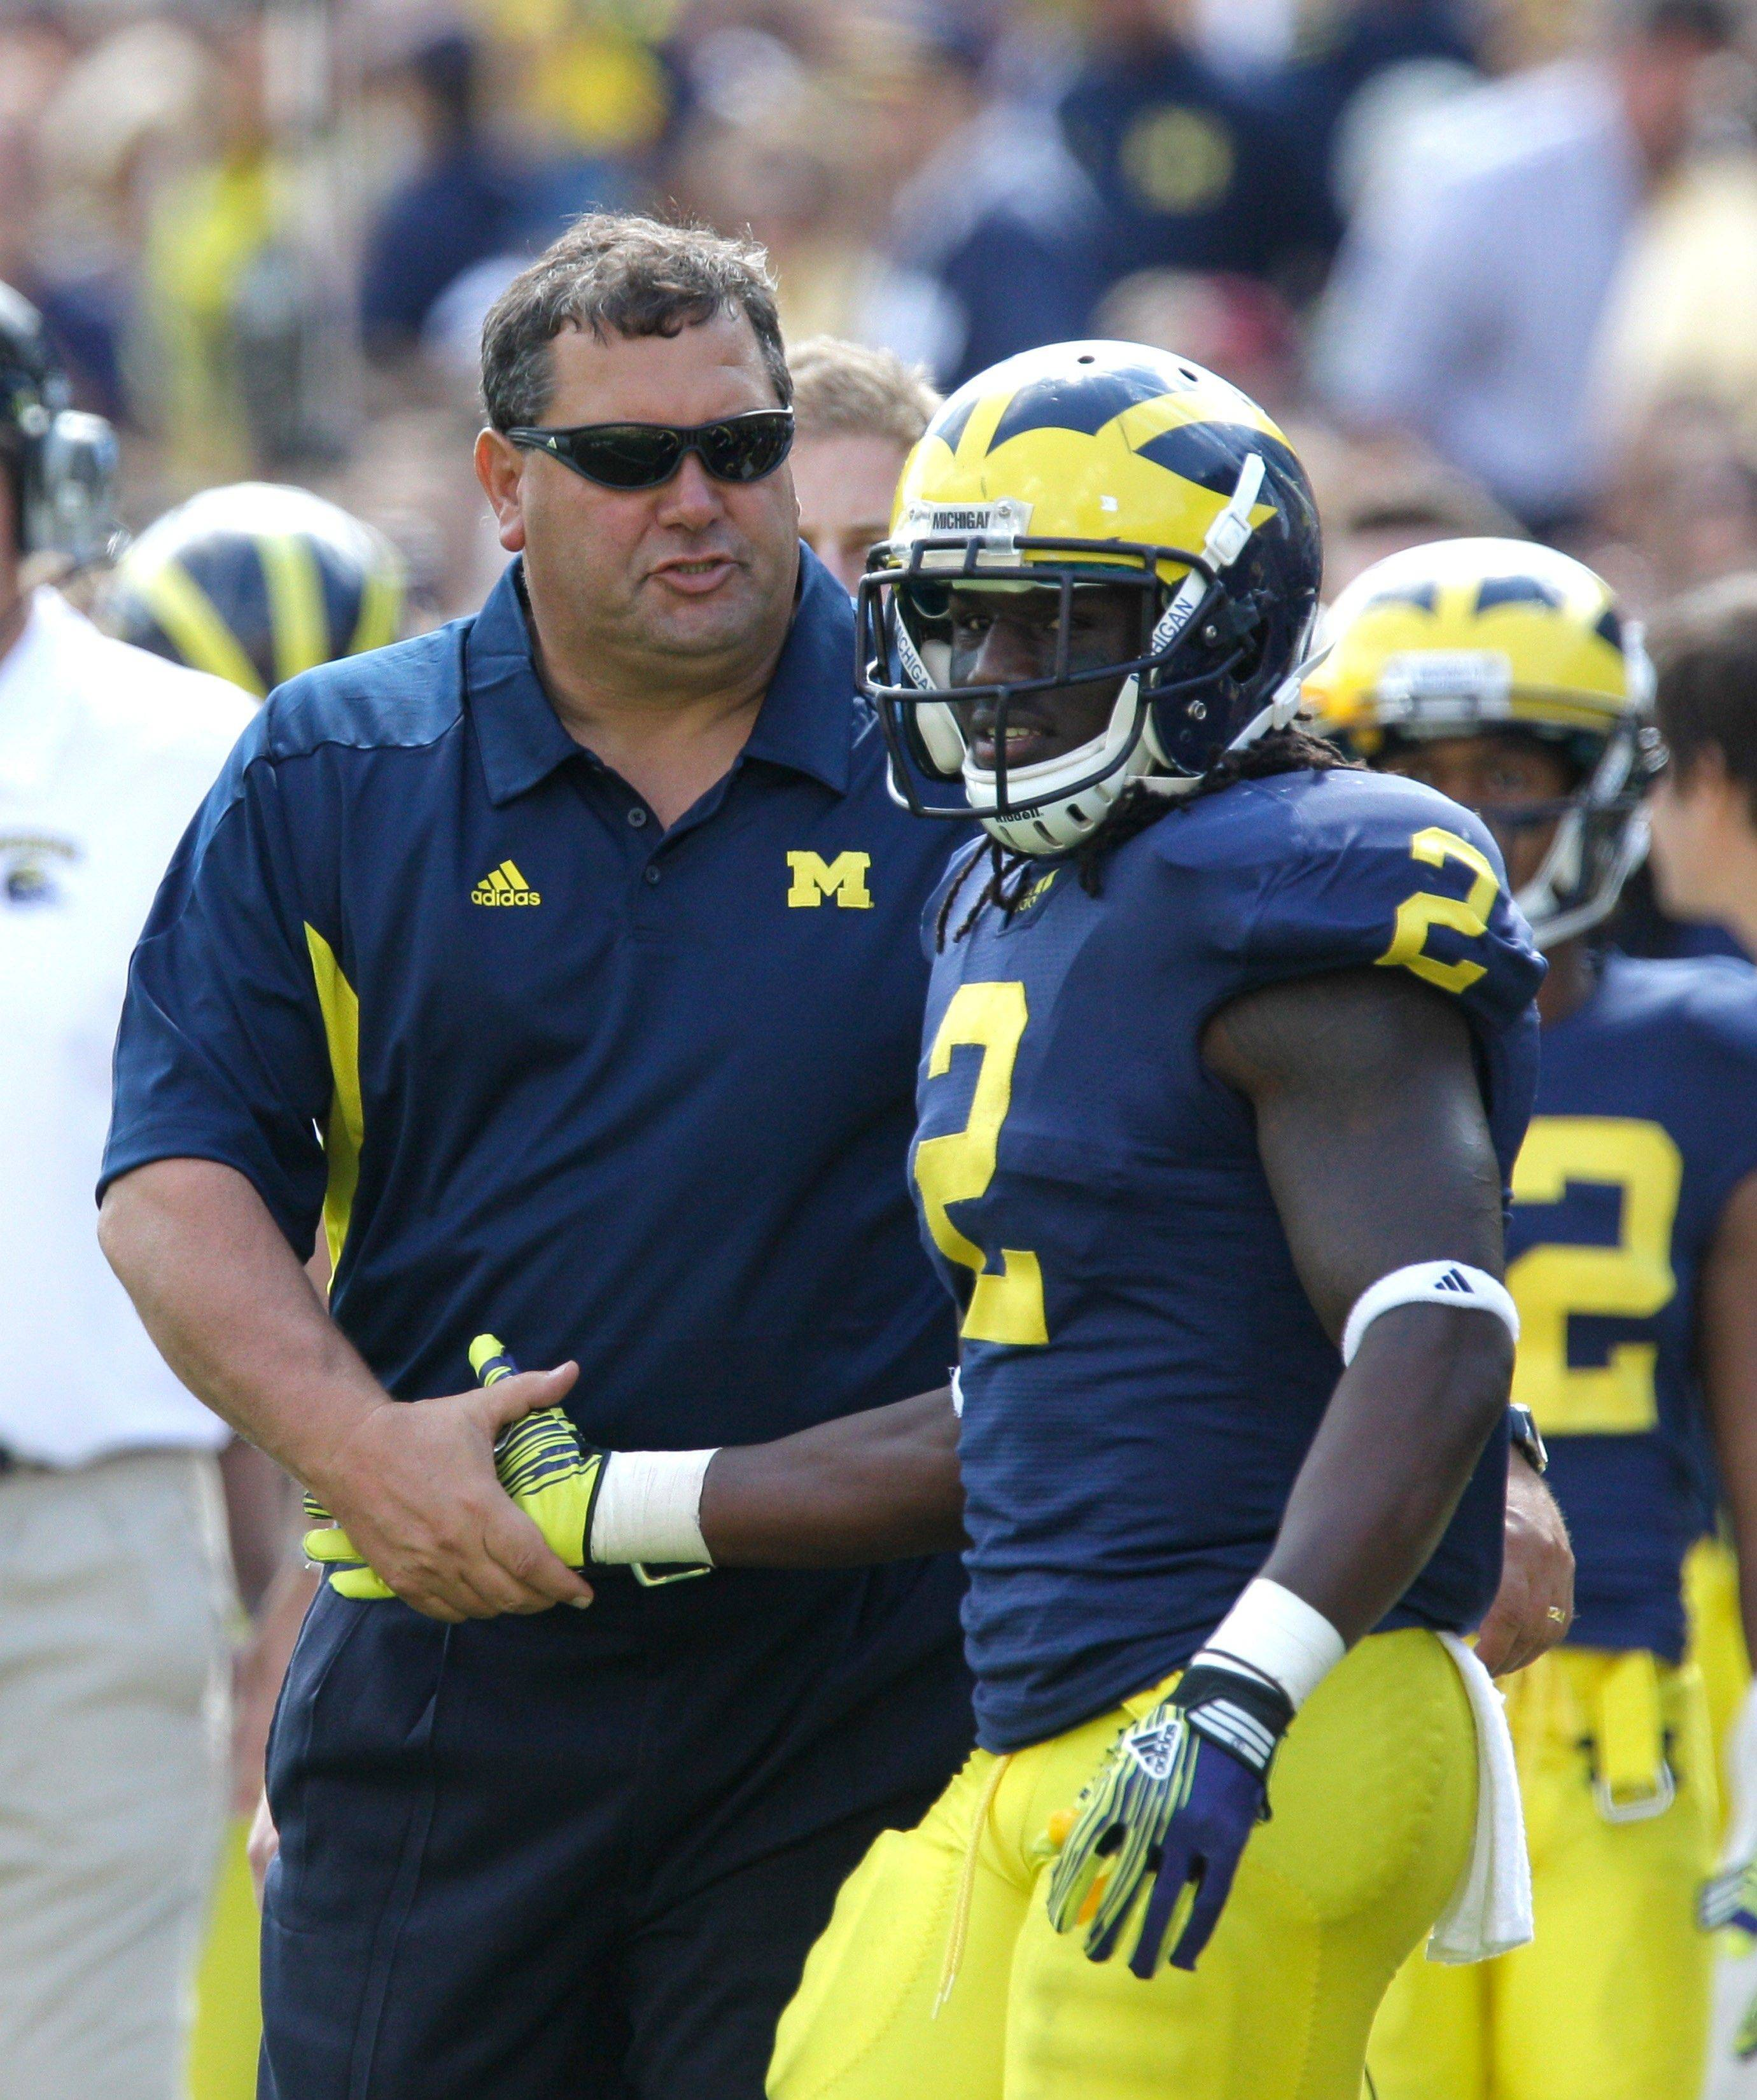 Michigan head coach Brady Hoke will be facing his former team this Saturday.